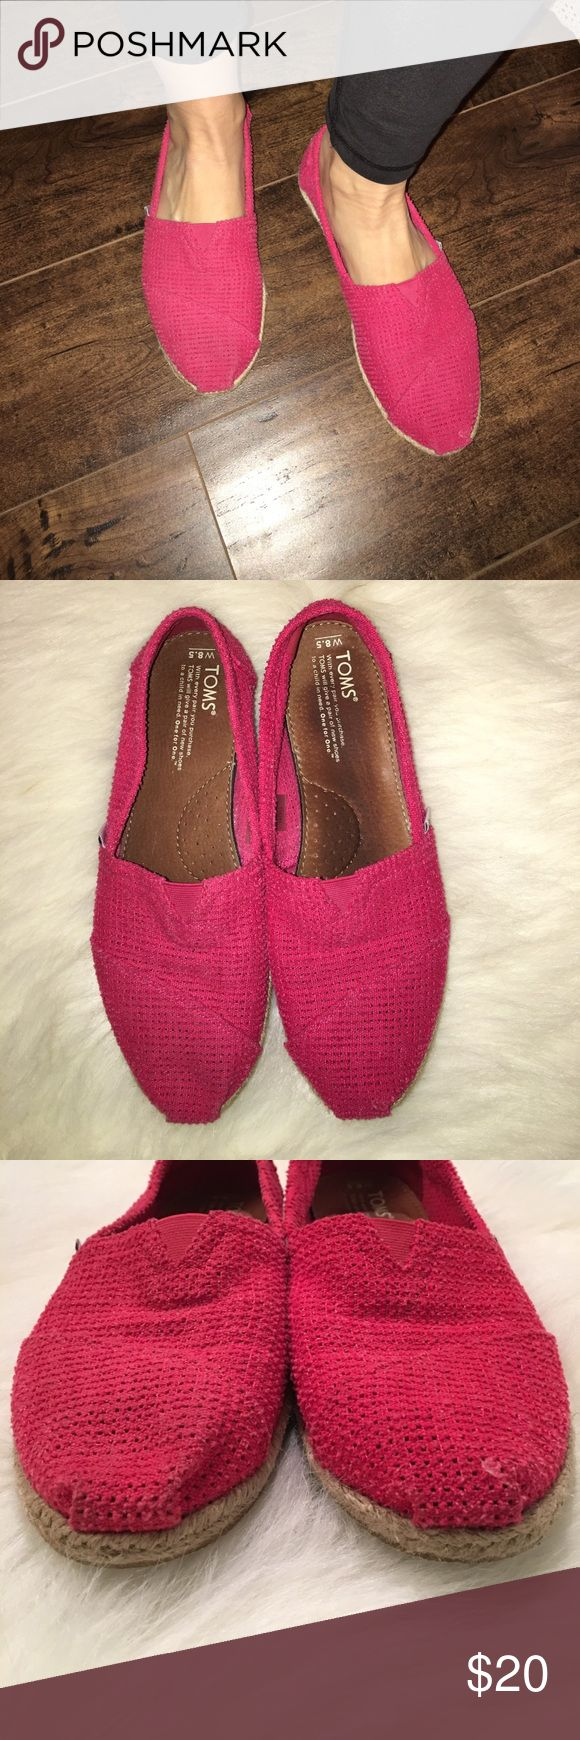 Pink Toms Good used condition. Minor wear. Smoke free and pet free home. Toms Shoes Flats & Loafers